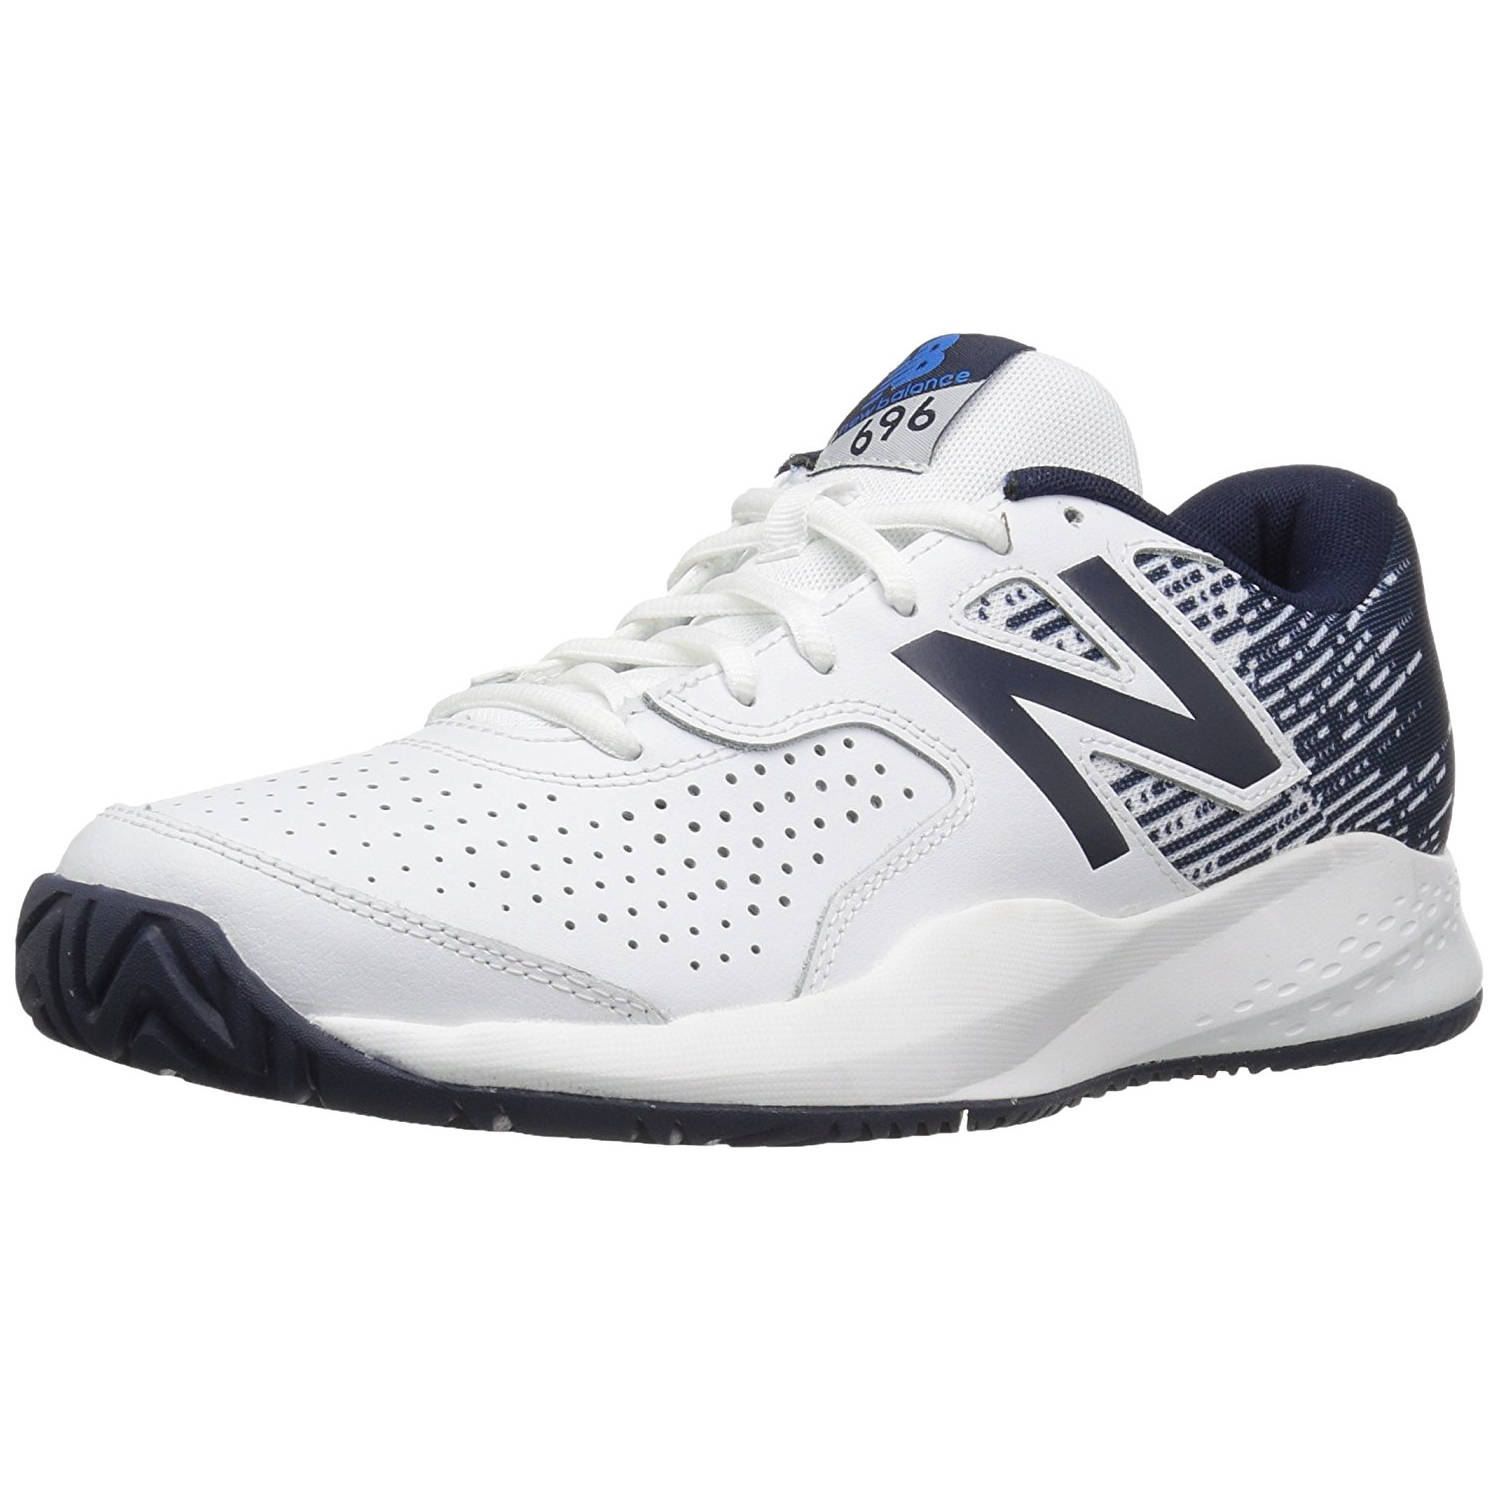 Best New Balance Shoes For Tennis